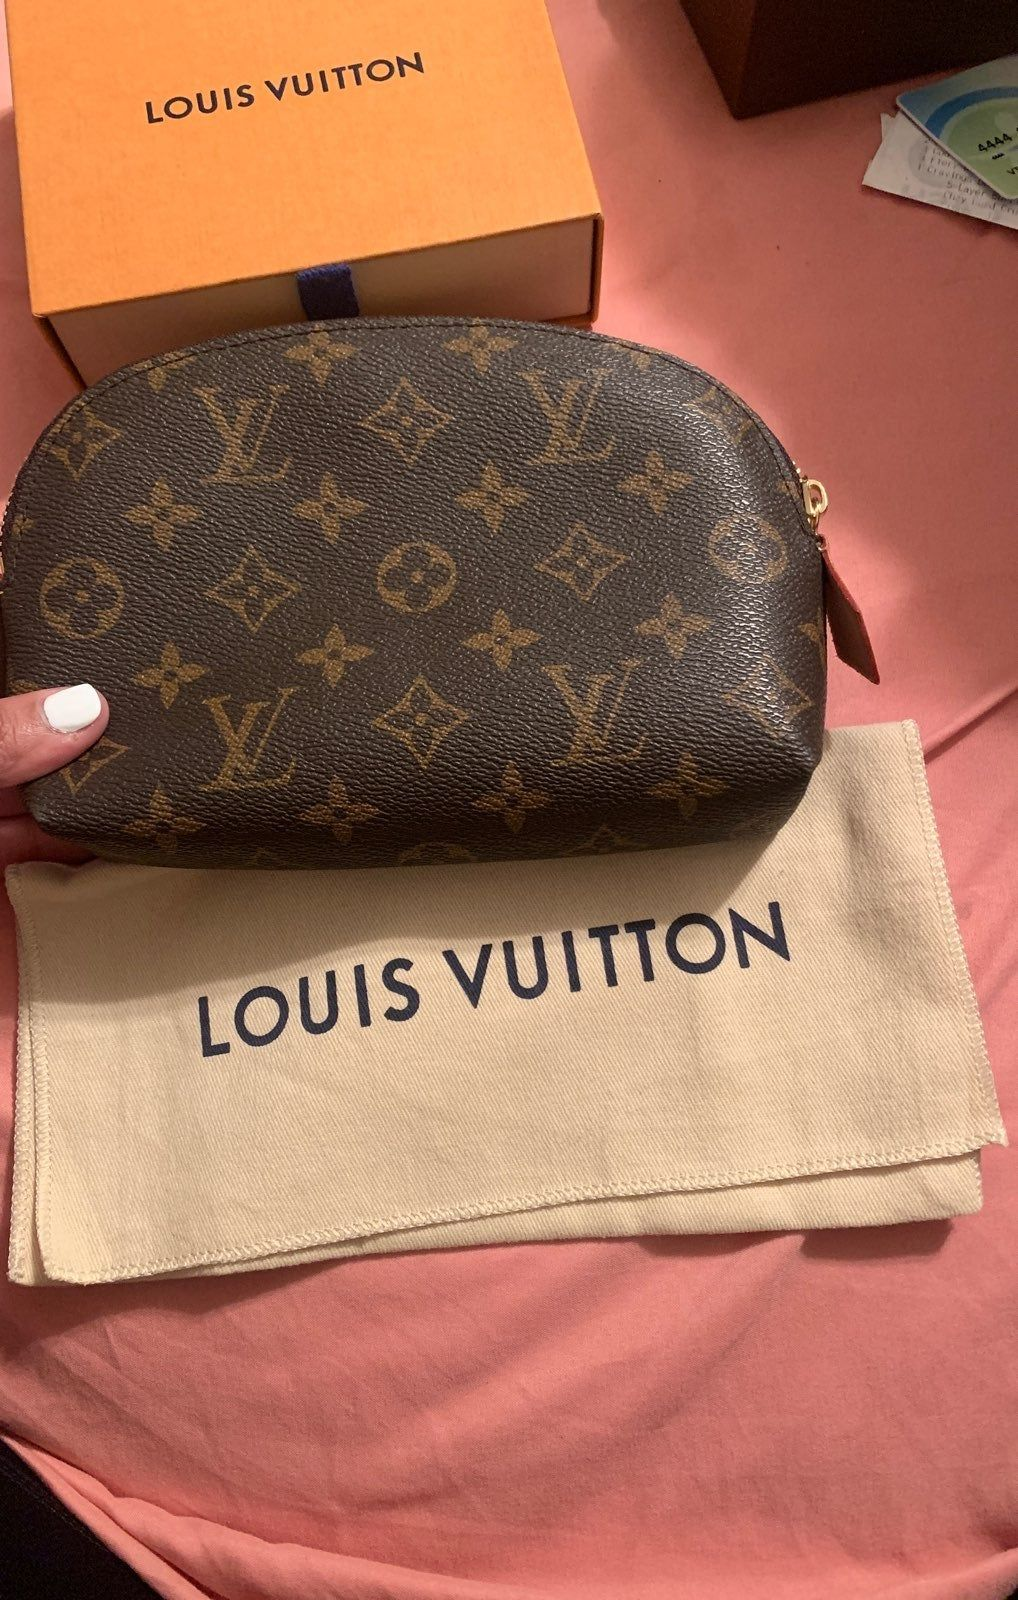 Makeup Bag Pm Size Has A Small Stain In The Inside Louis Vuitton Cosmetic Bag Louis Vuitton Pochette Vuitton